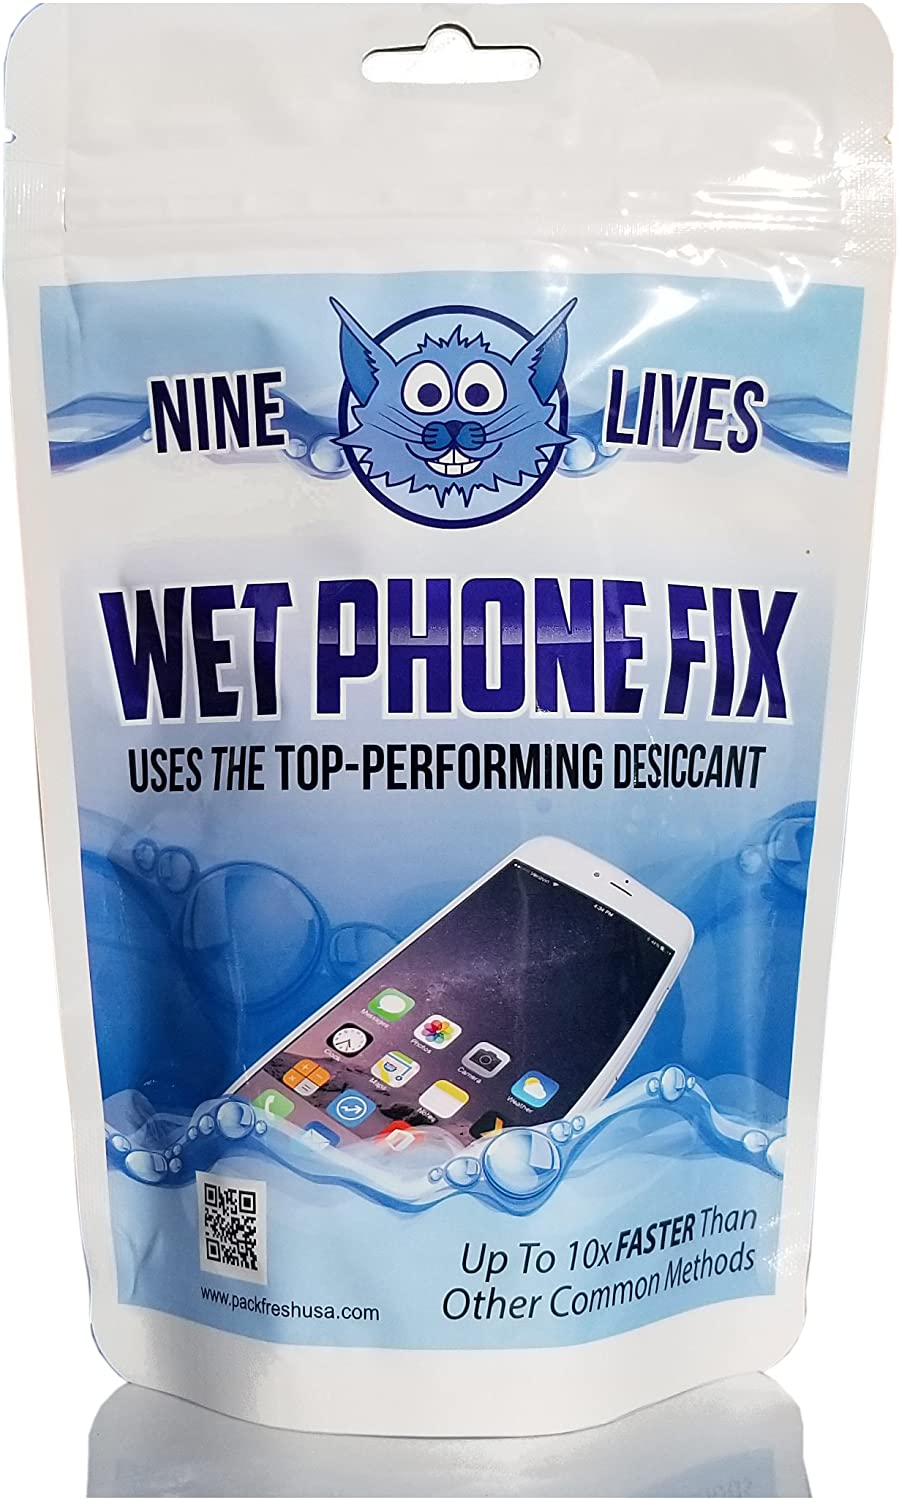 PackFreshUSA: Nine Lives Wet Phone Fix – Premium Desiccant - Water Damage Repair – Moisture Removal – Non-Toxic - Rapid Drying System for Cell Phones and Electronics - 1 Pack